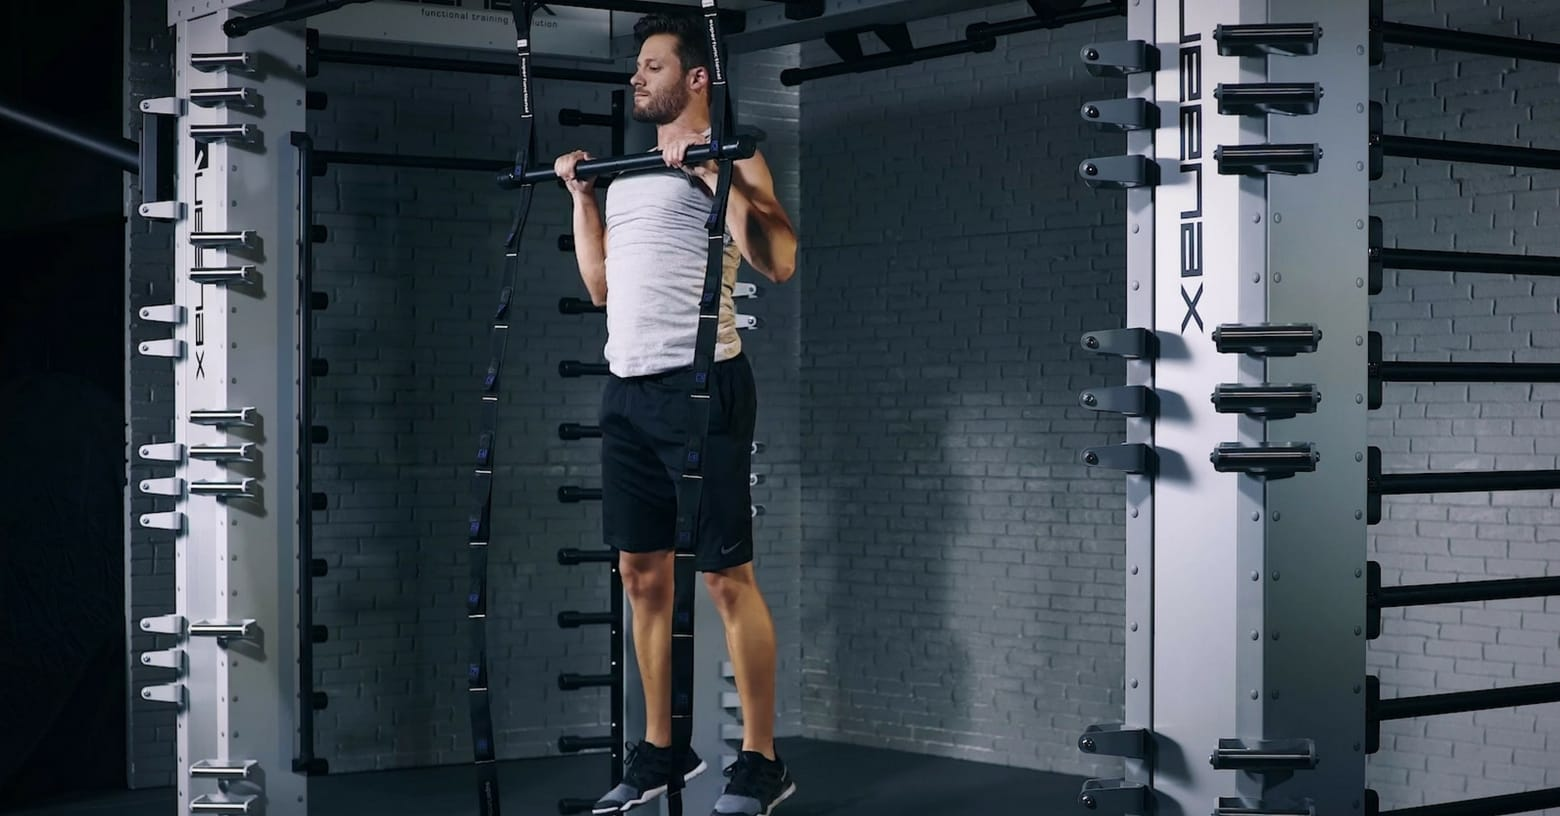 Tutorial: Burpee Pull-Up